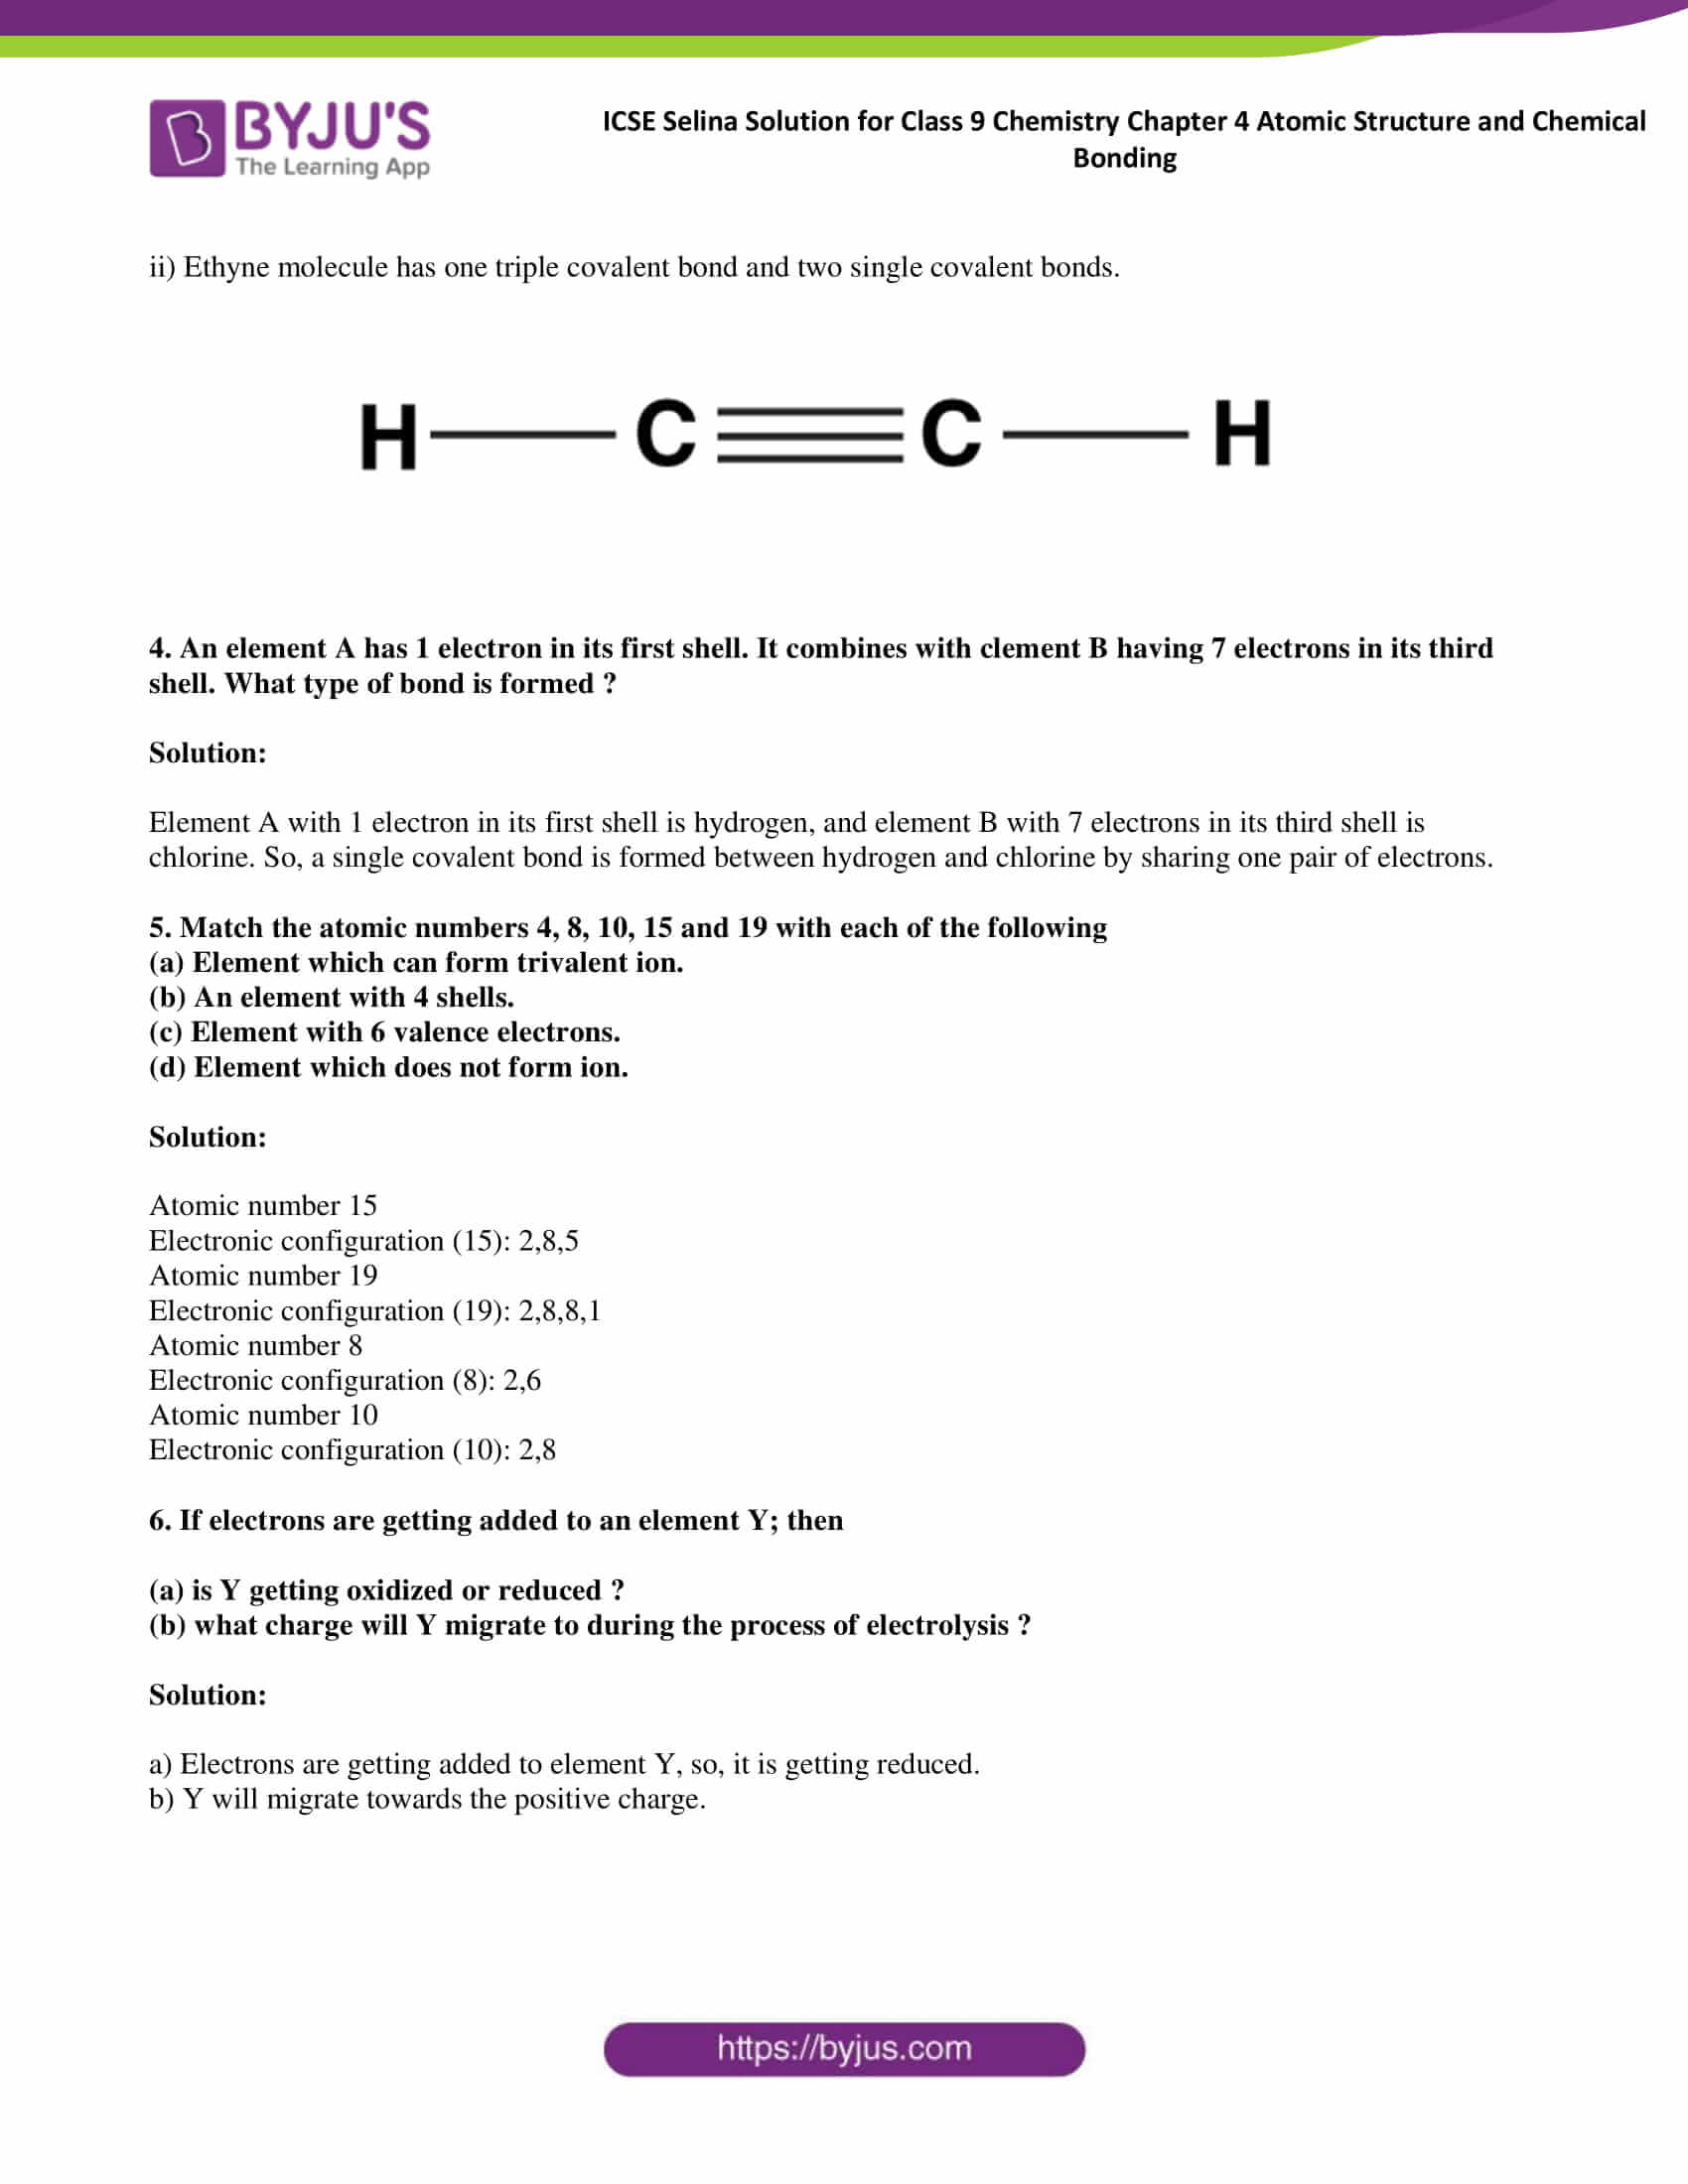 ICSE Selina Solution for class 9 Chemistry Chapter 4 Ex part 25